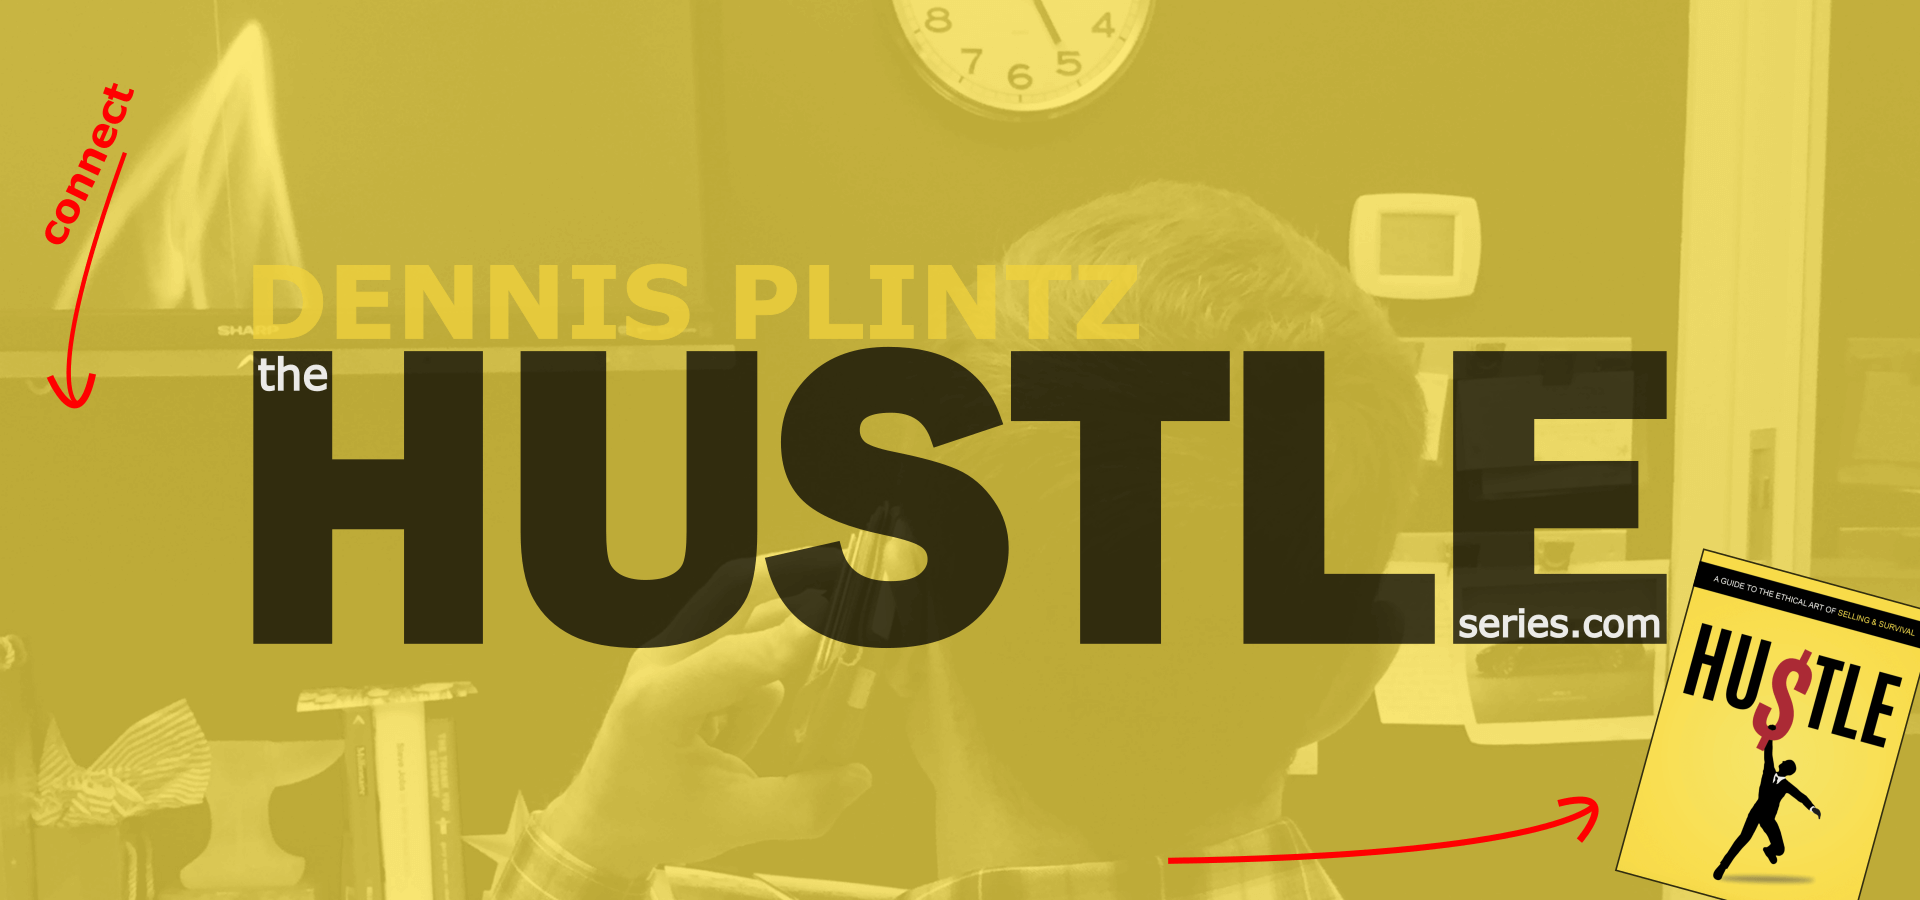 The Hustle Series by Dennis Plintz home slider